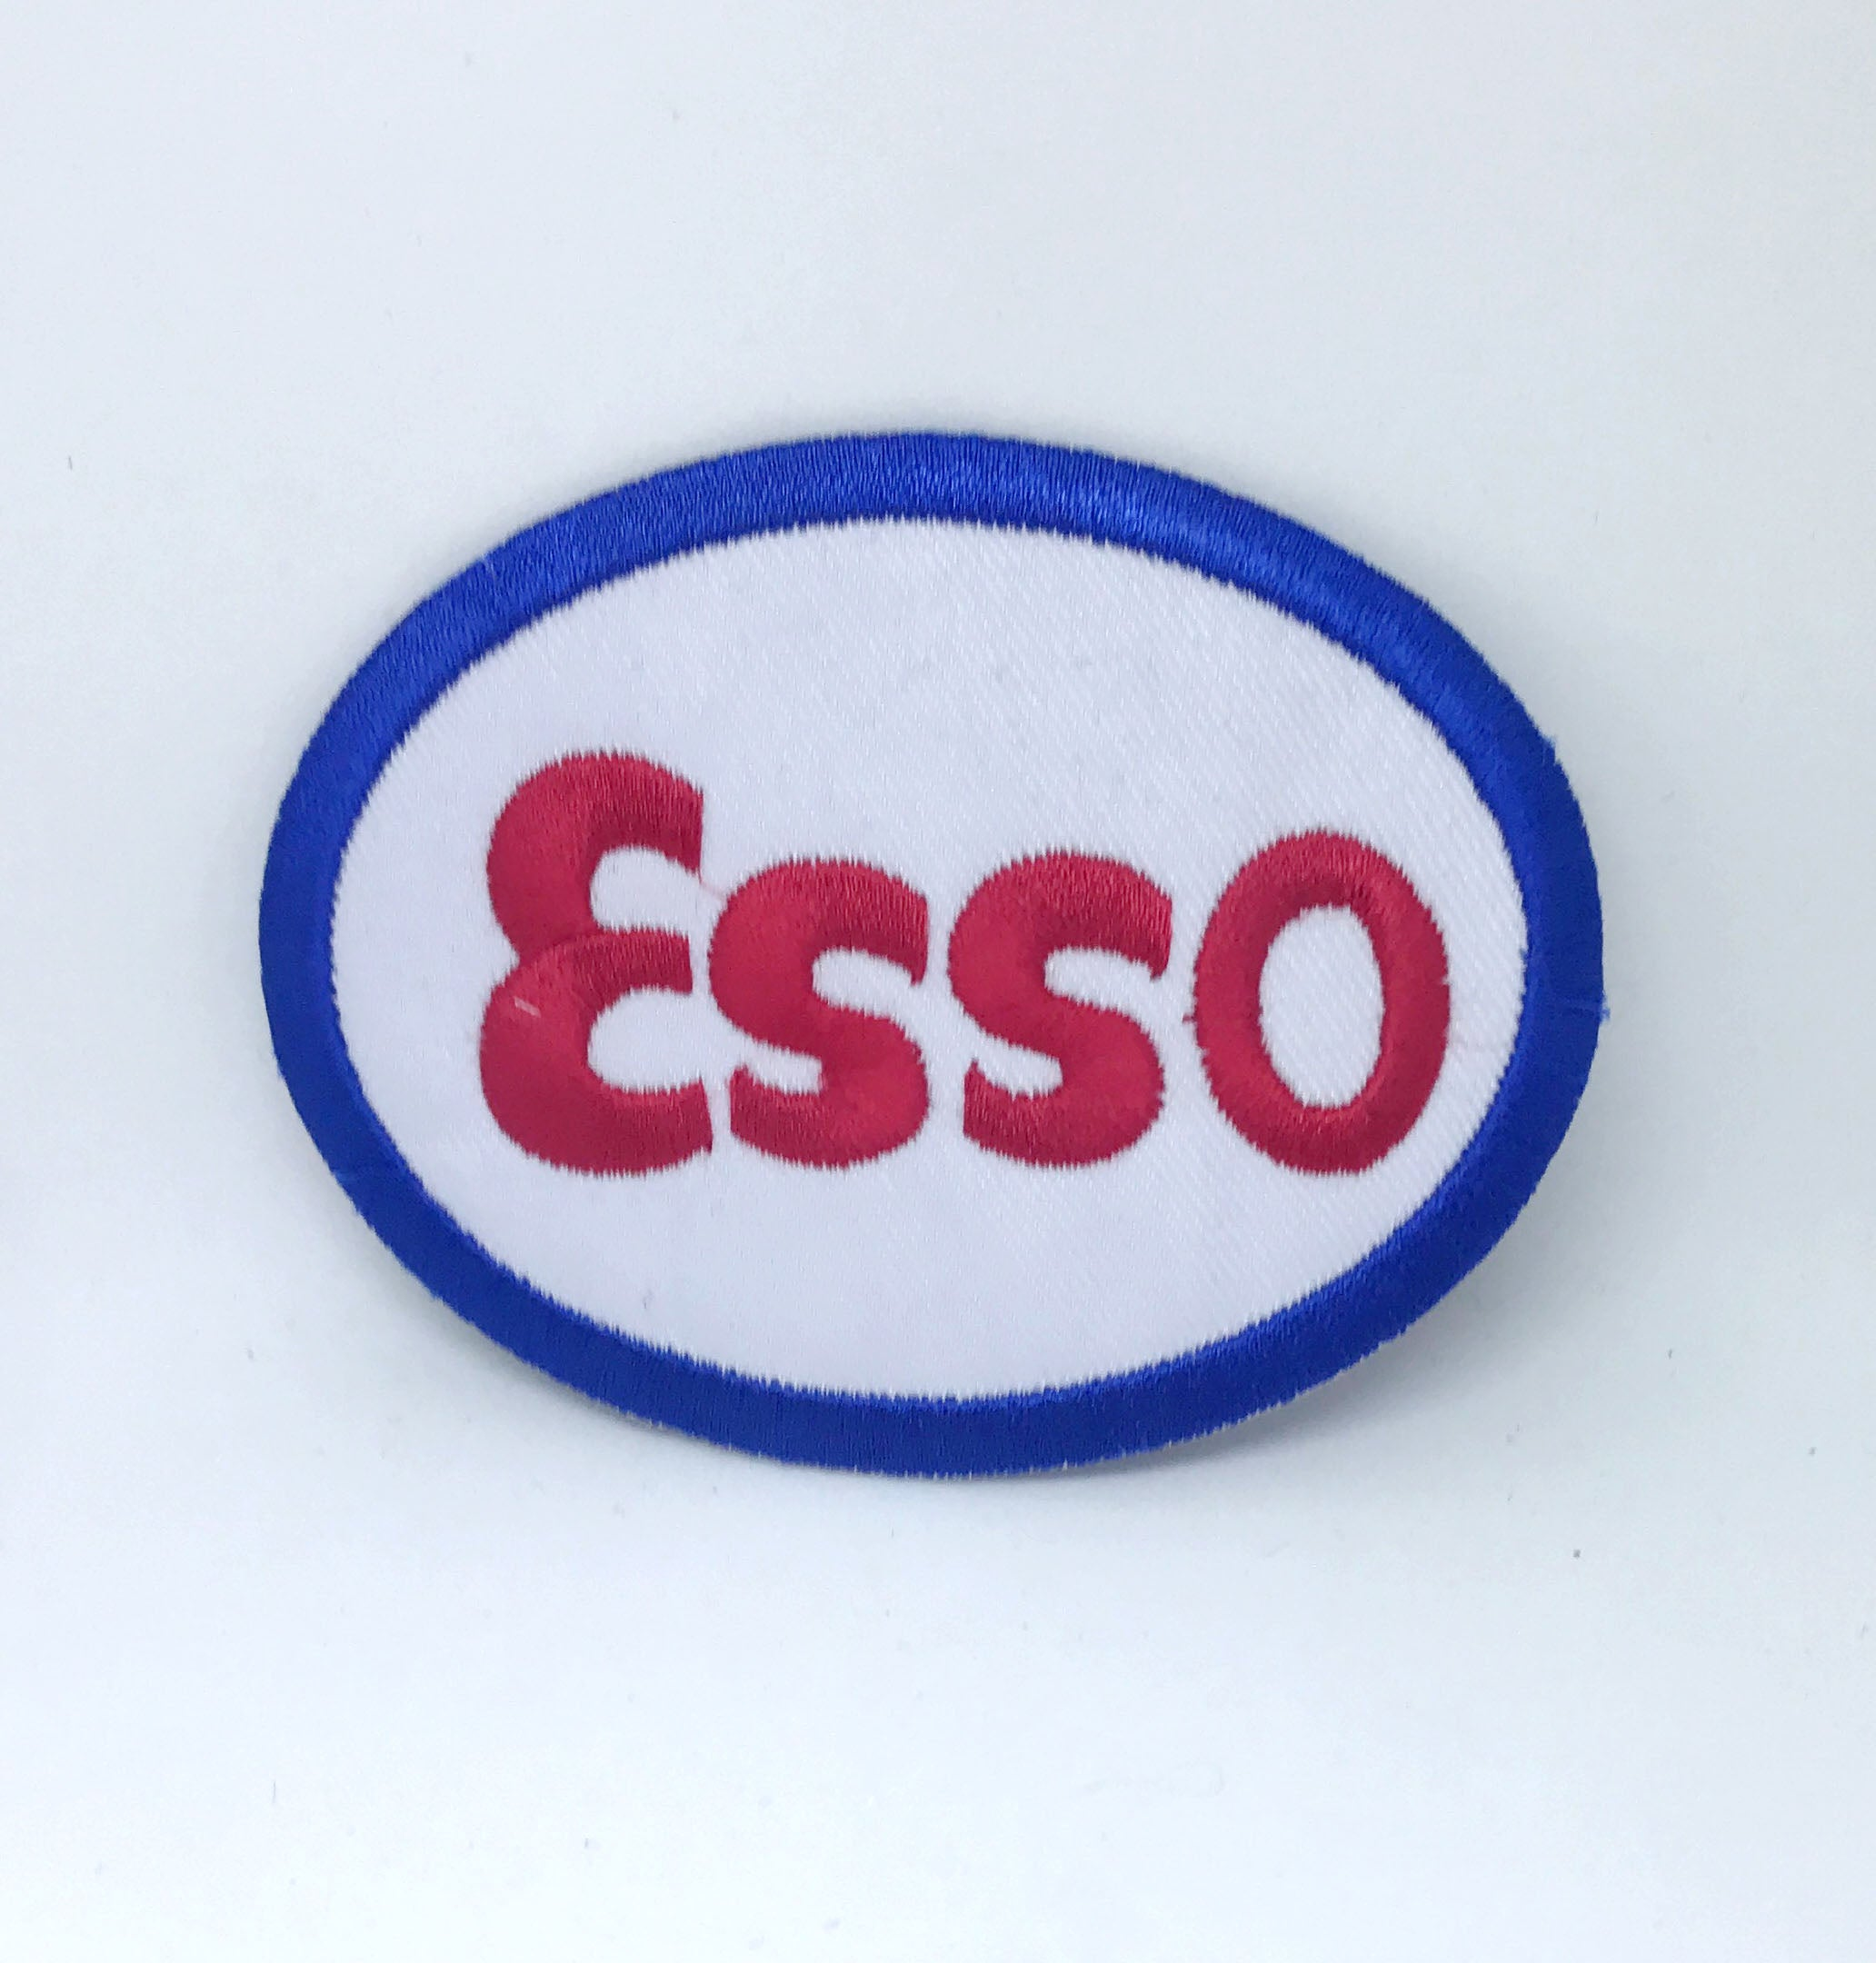 Esso Gasoline Car Iron on Sew on Embroidered Patch - Patches-Badges